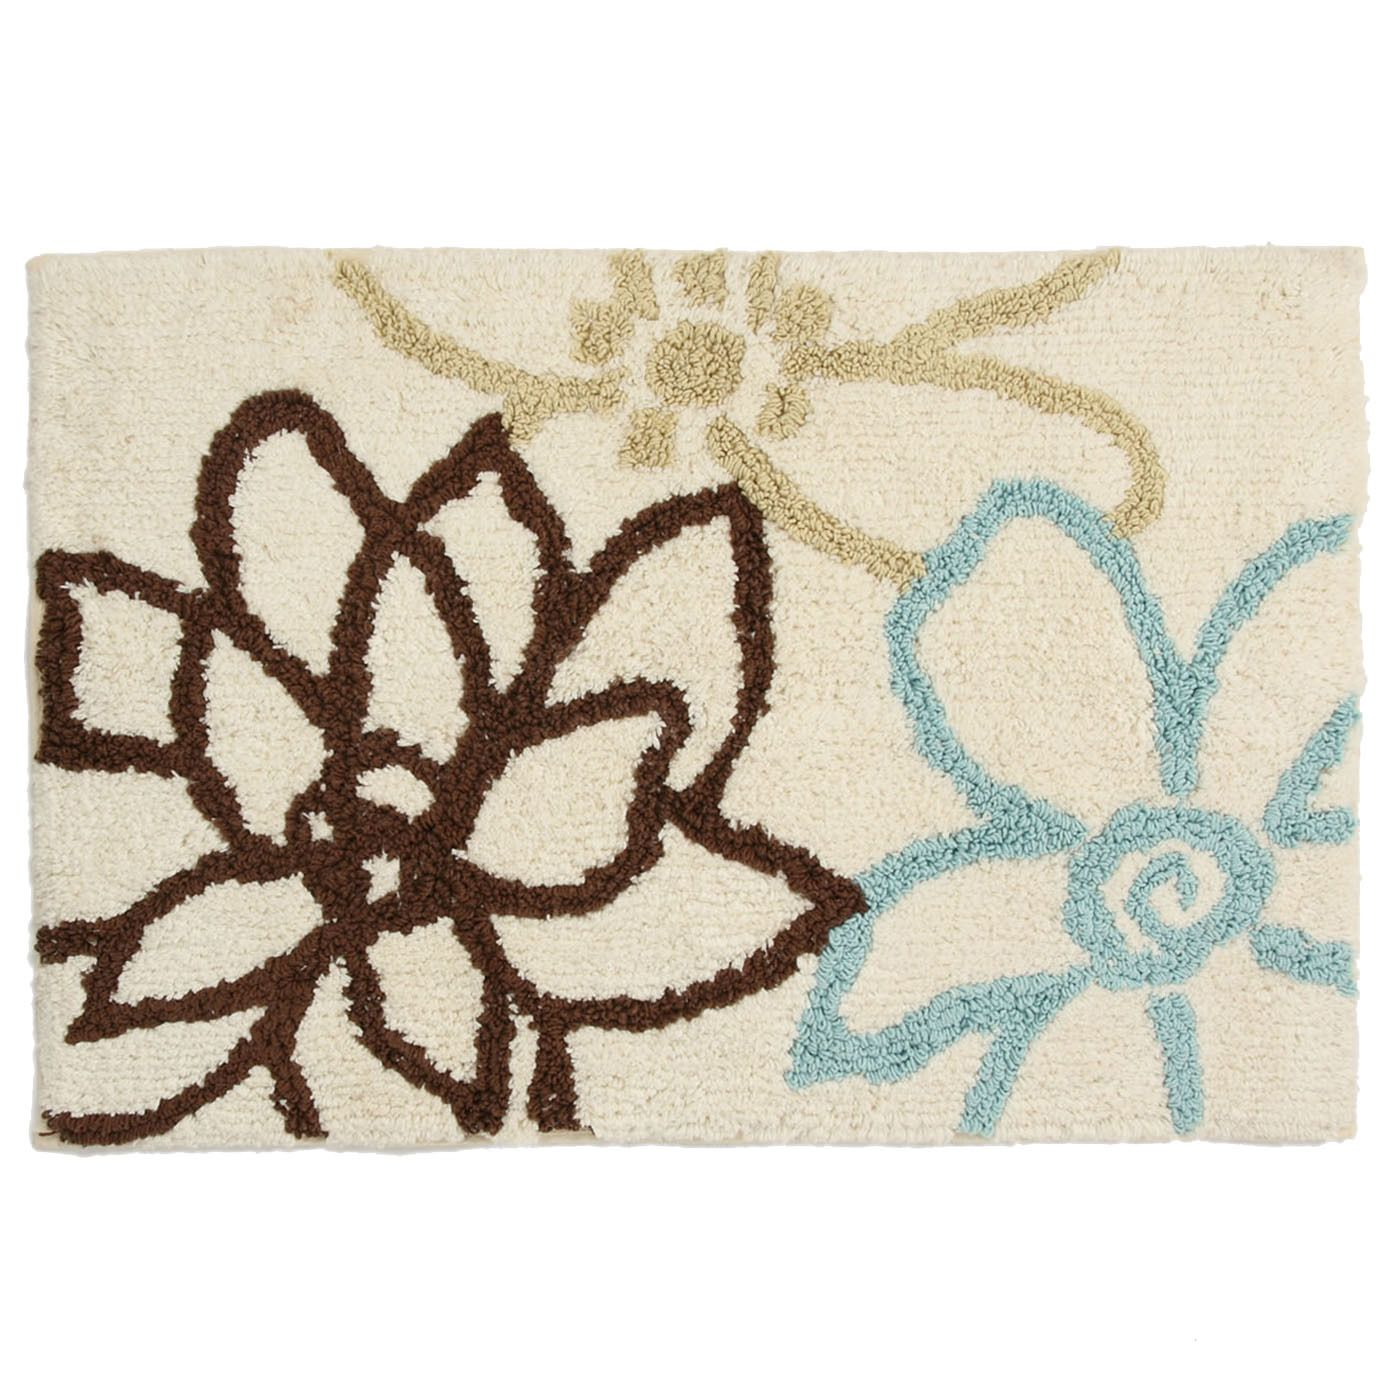 Shopko Whimsy Floral Tufted Bath Rug 24 Rugs Decor Fun Decor